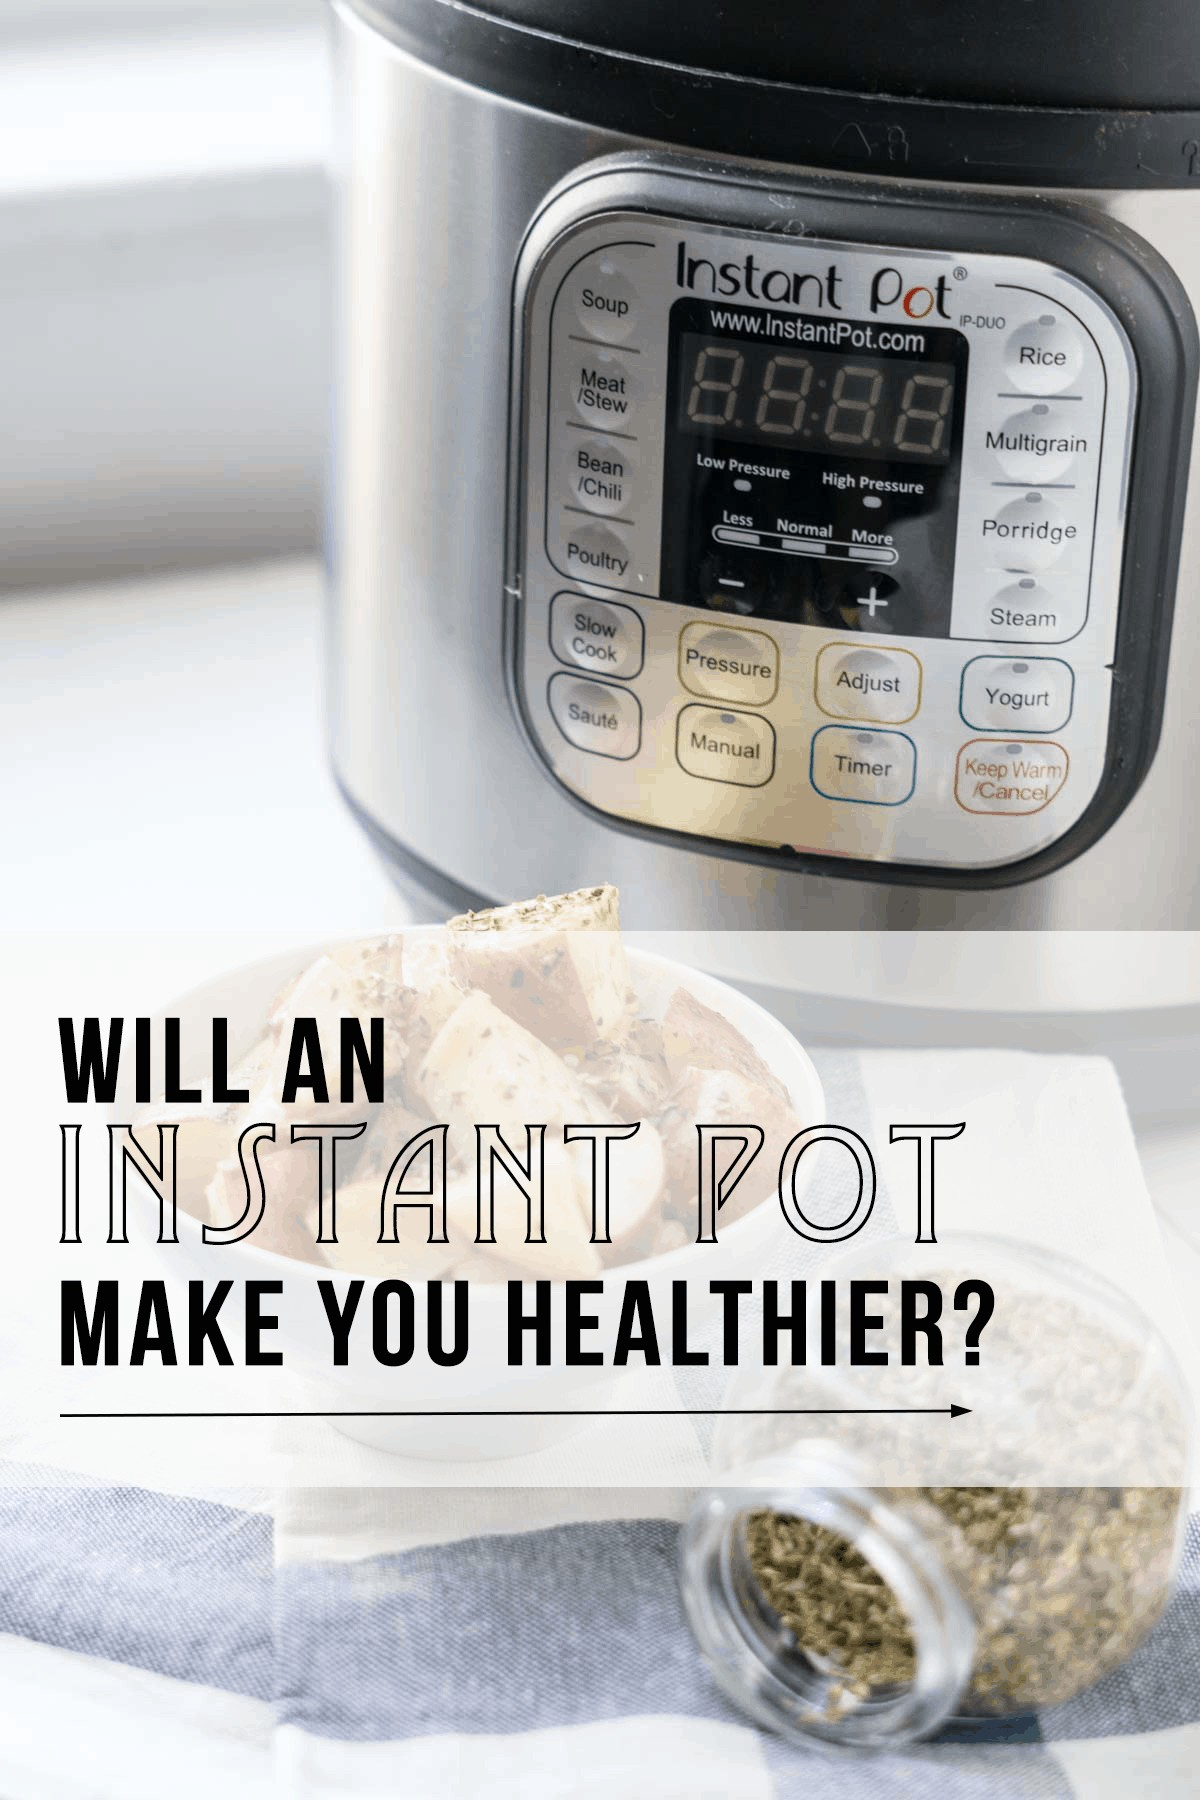 Will an Instant Pot make you healthier? Instant Pot Review